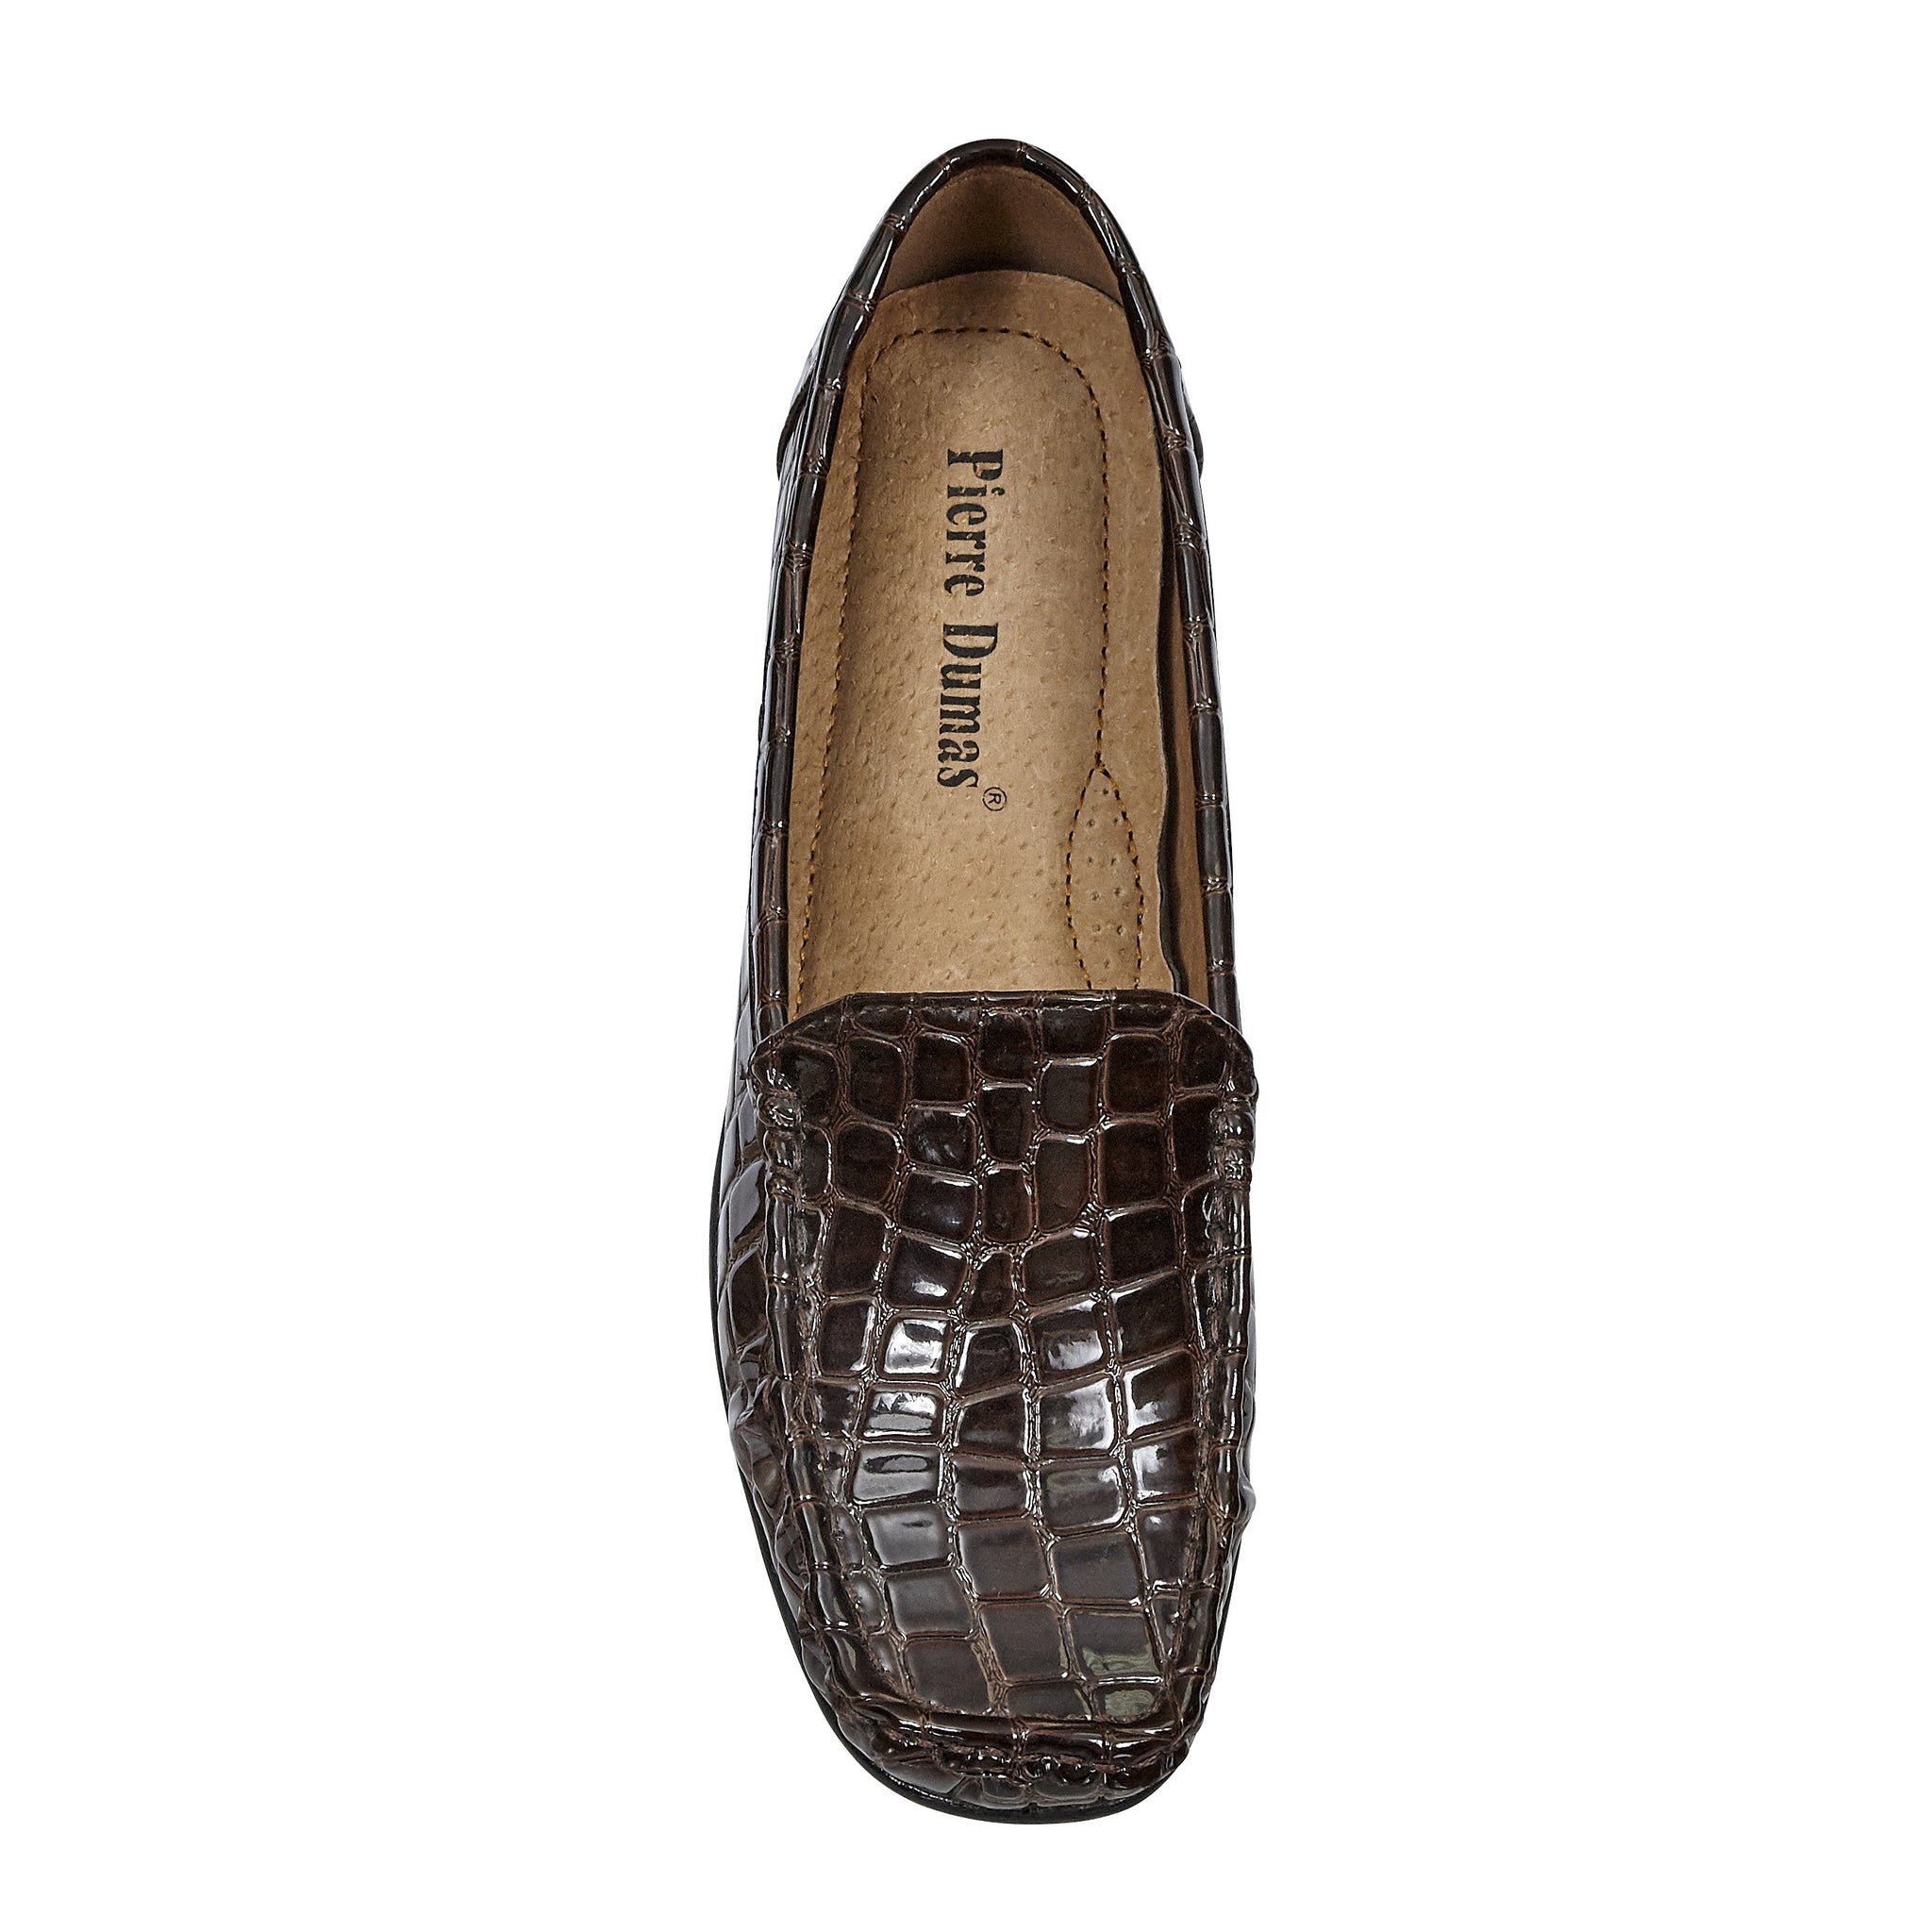 Hazel Brown Croco Loafer Flats - The Shoe Trunk